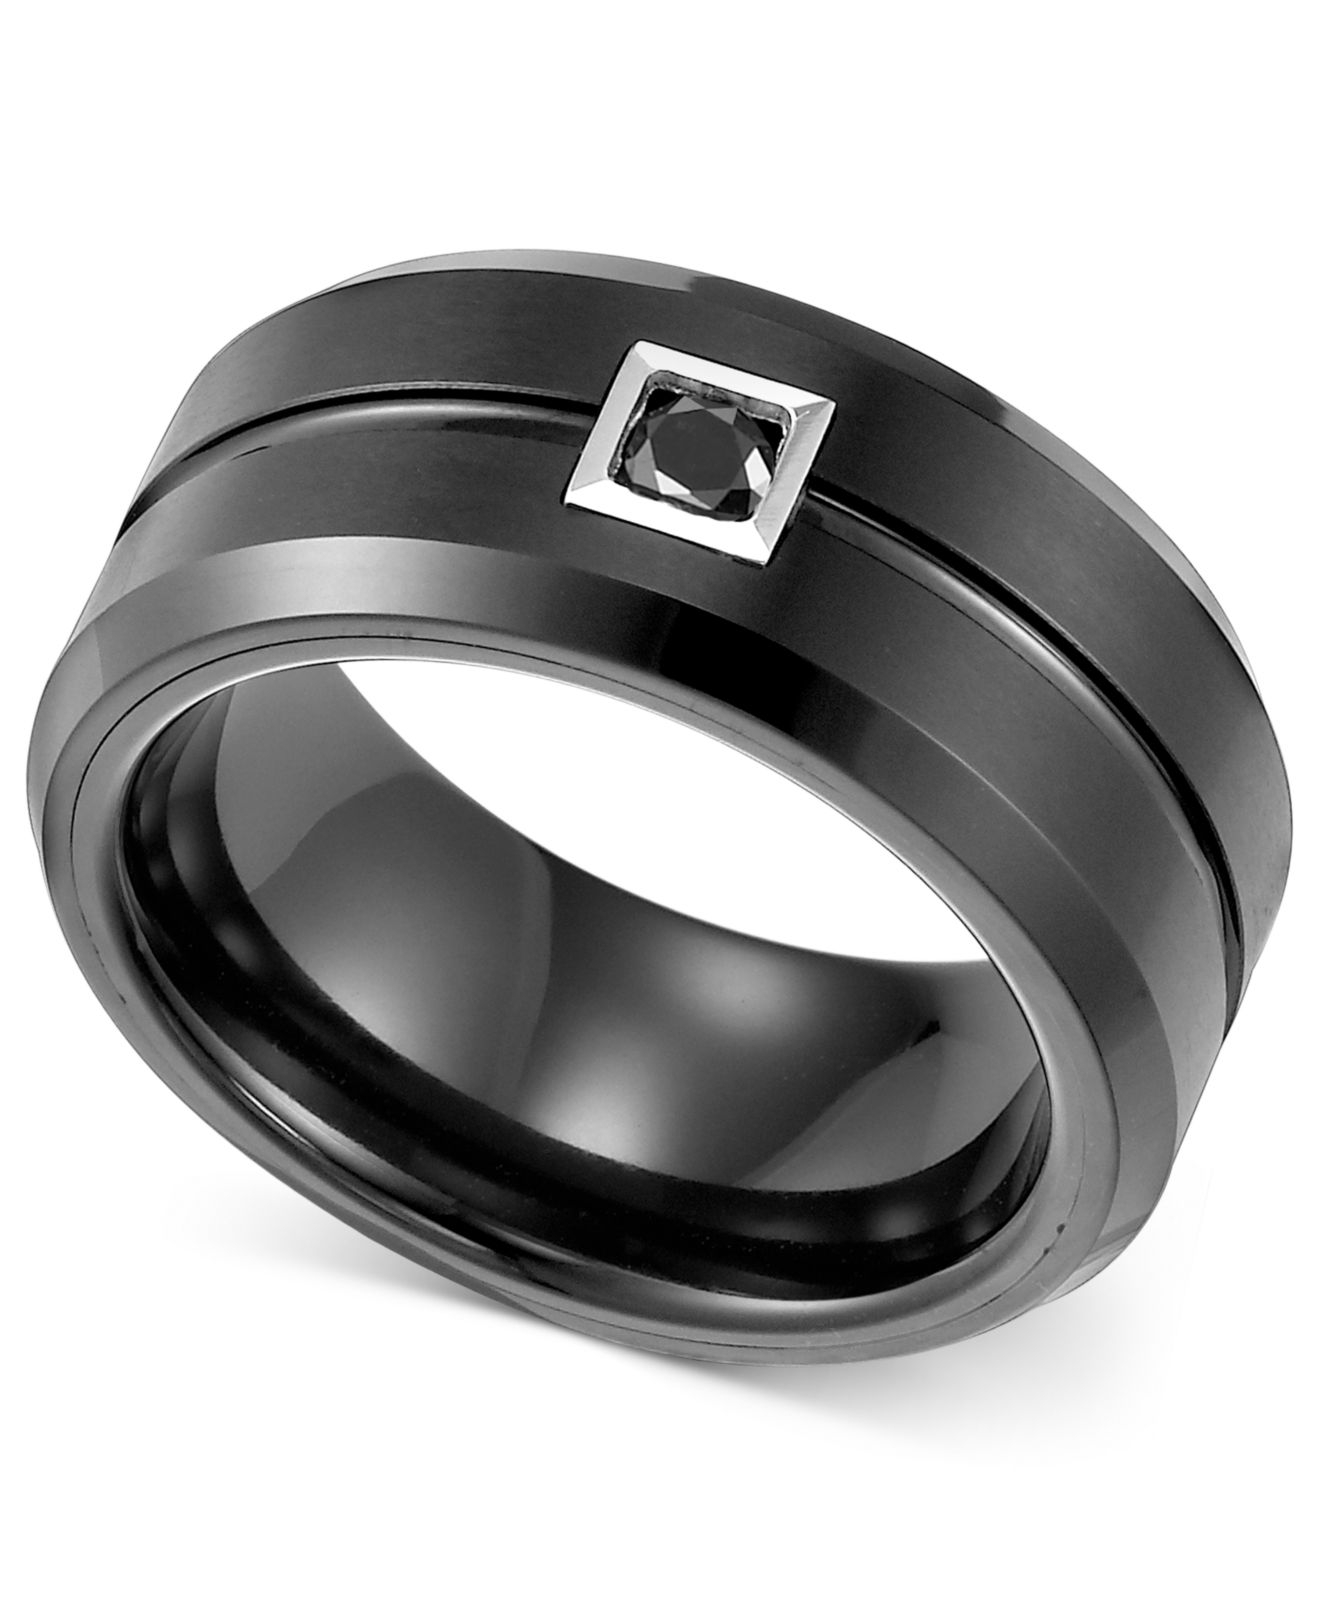 triton black diamond wedding band 1 10 ct t w in black lyst